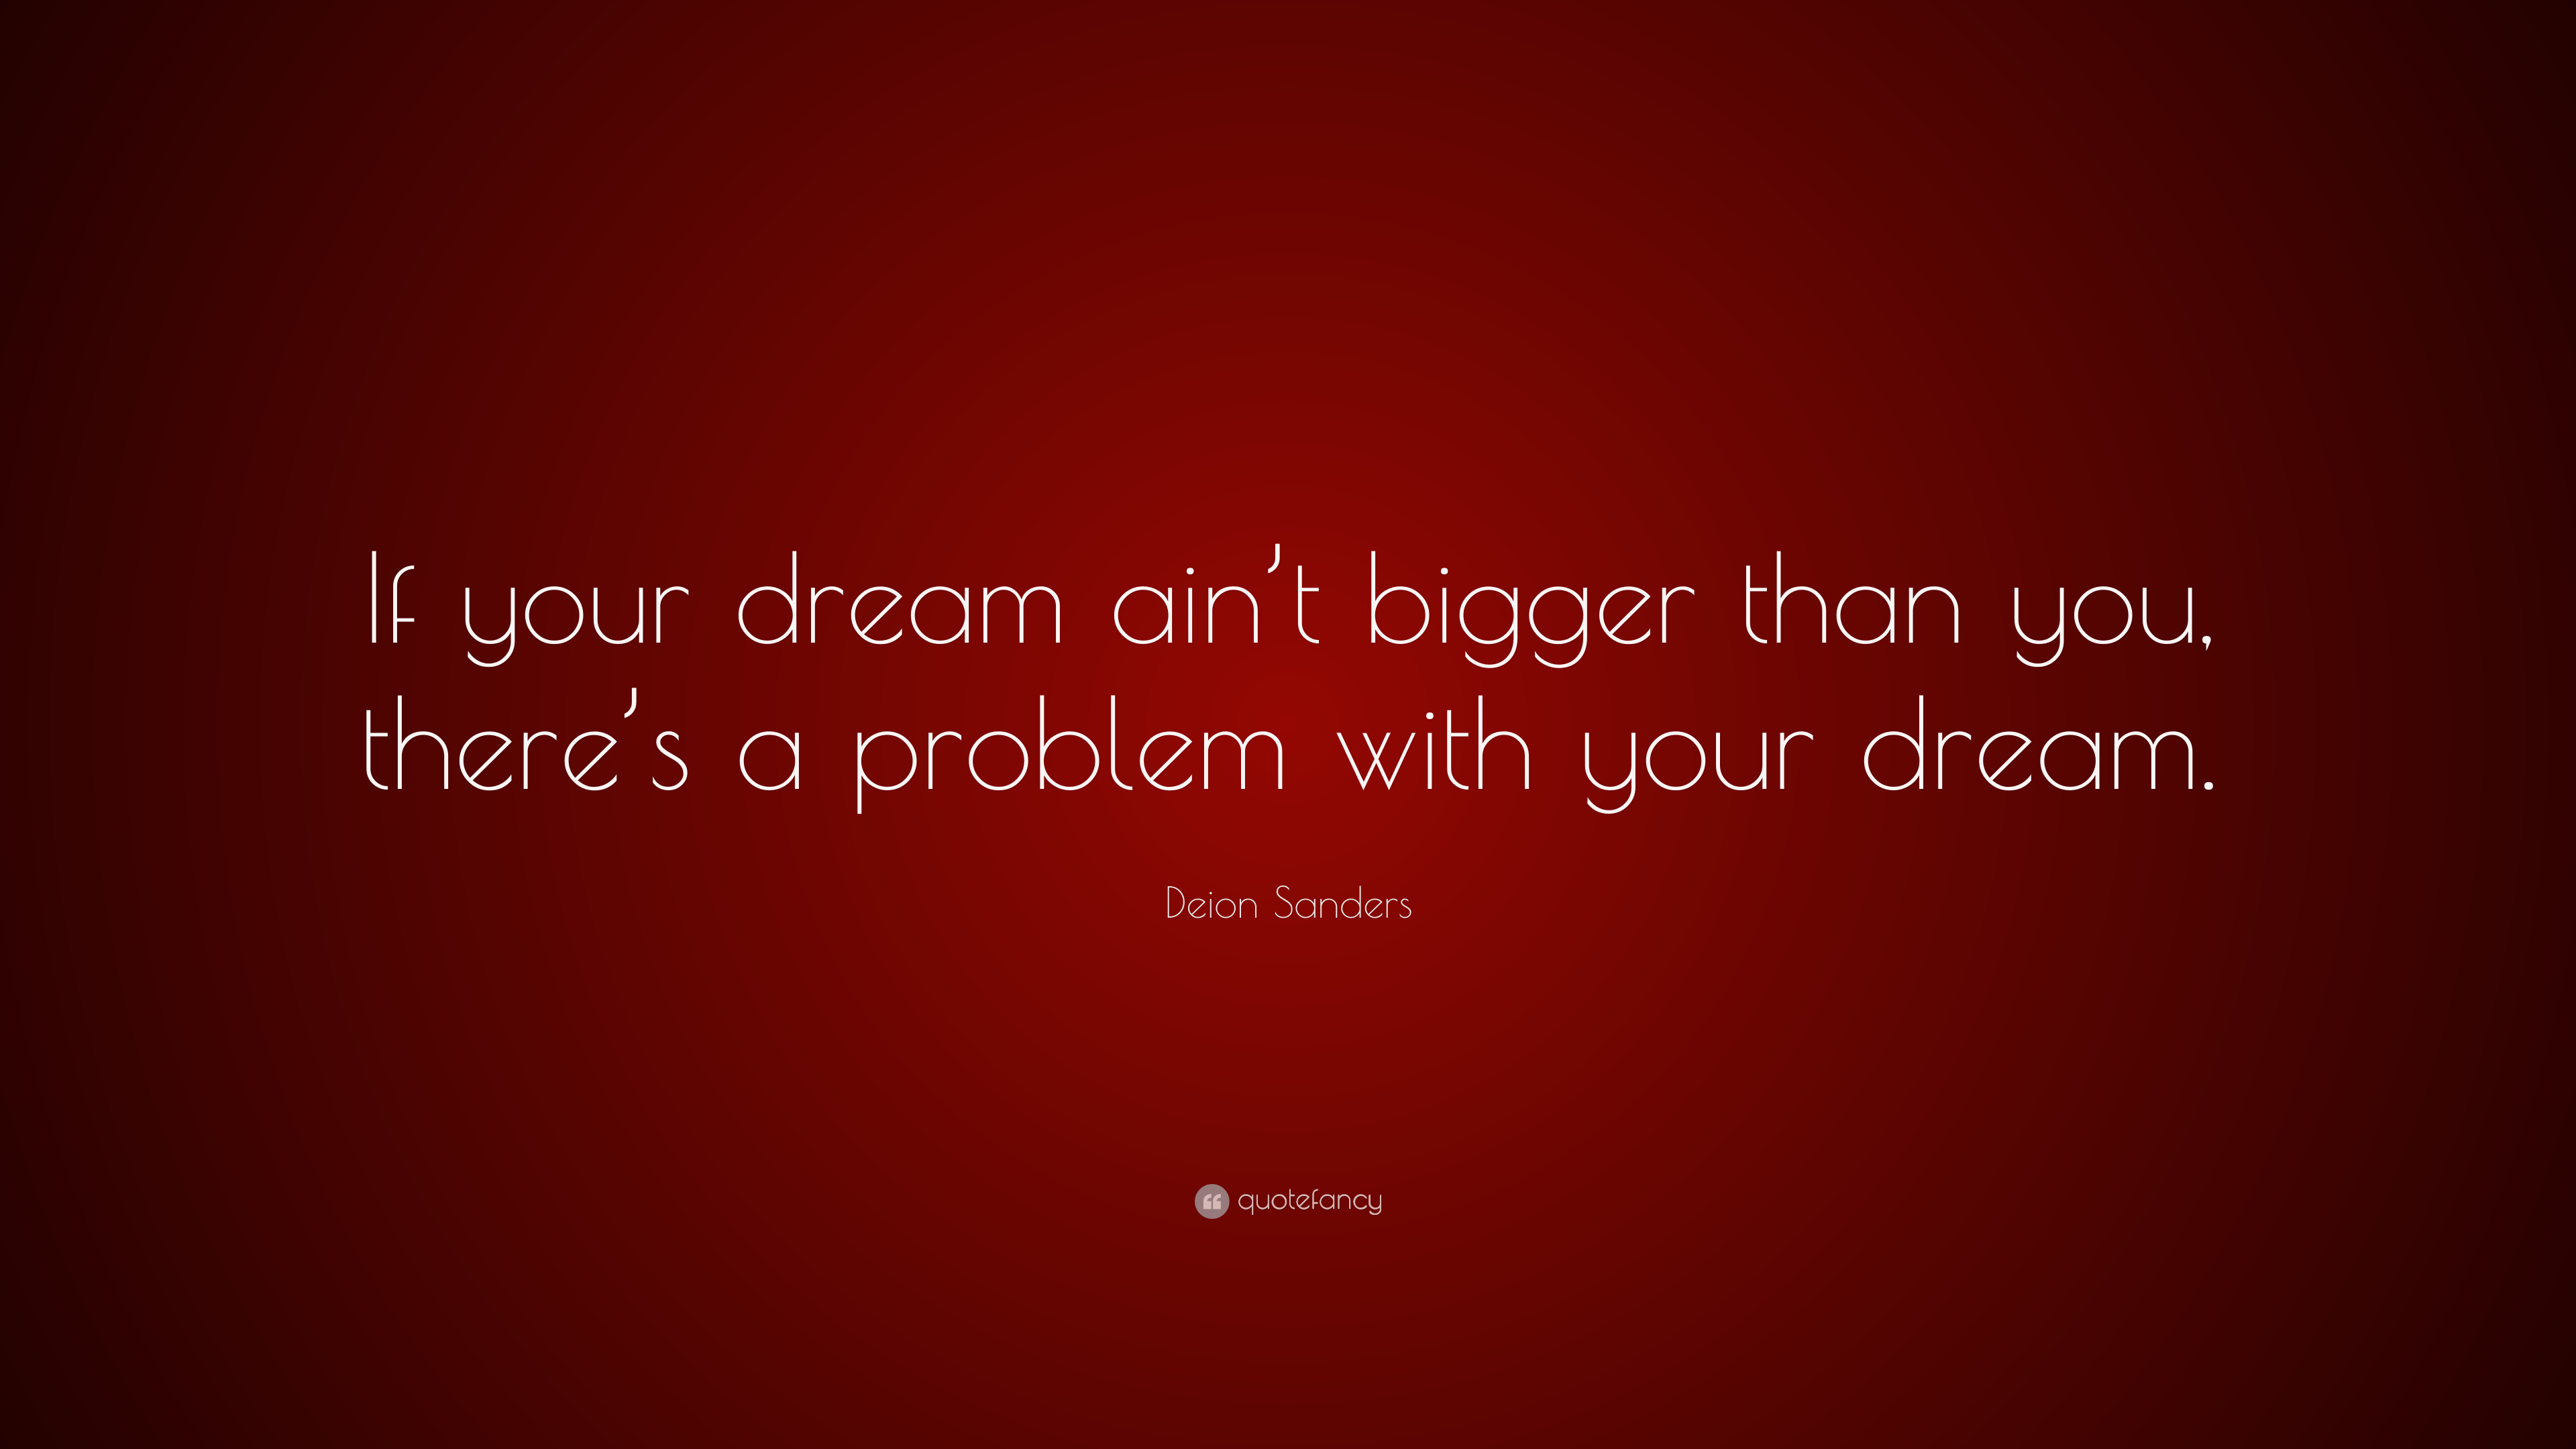 Deion Sanders Quote If Your Dream Aint Bigger Than You Theres A